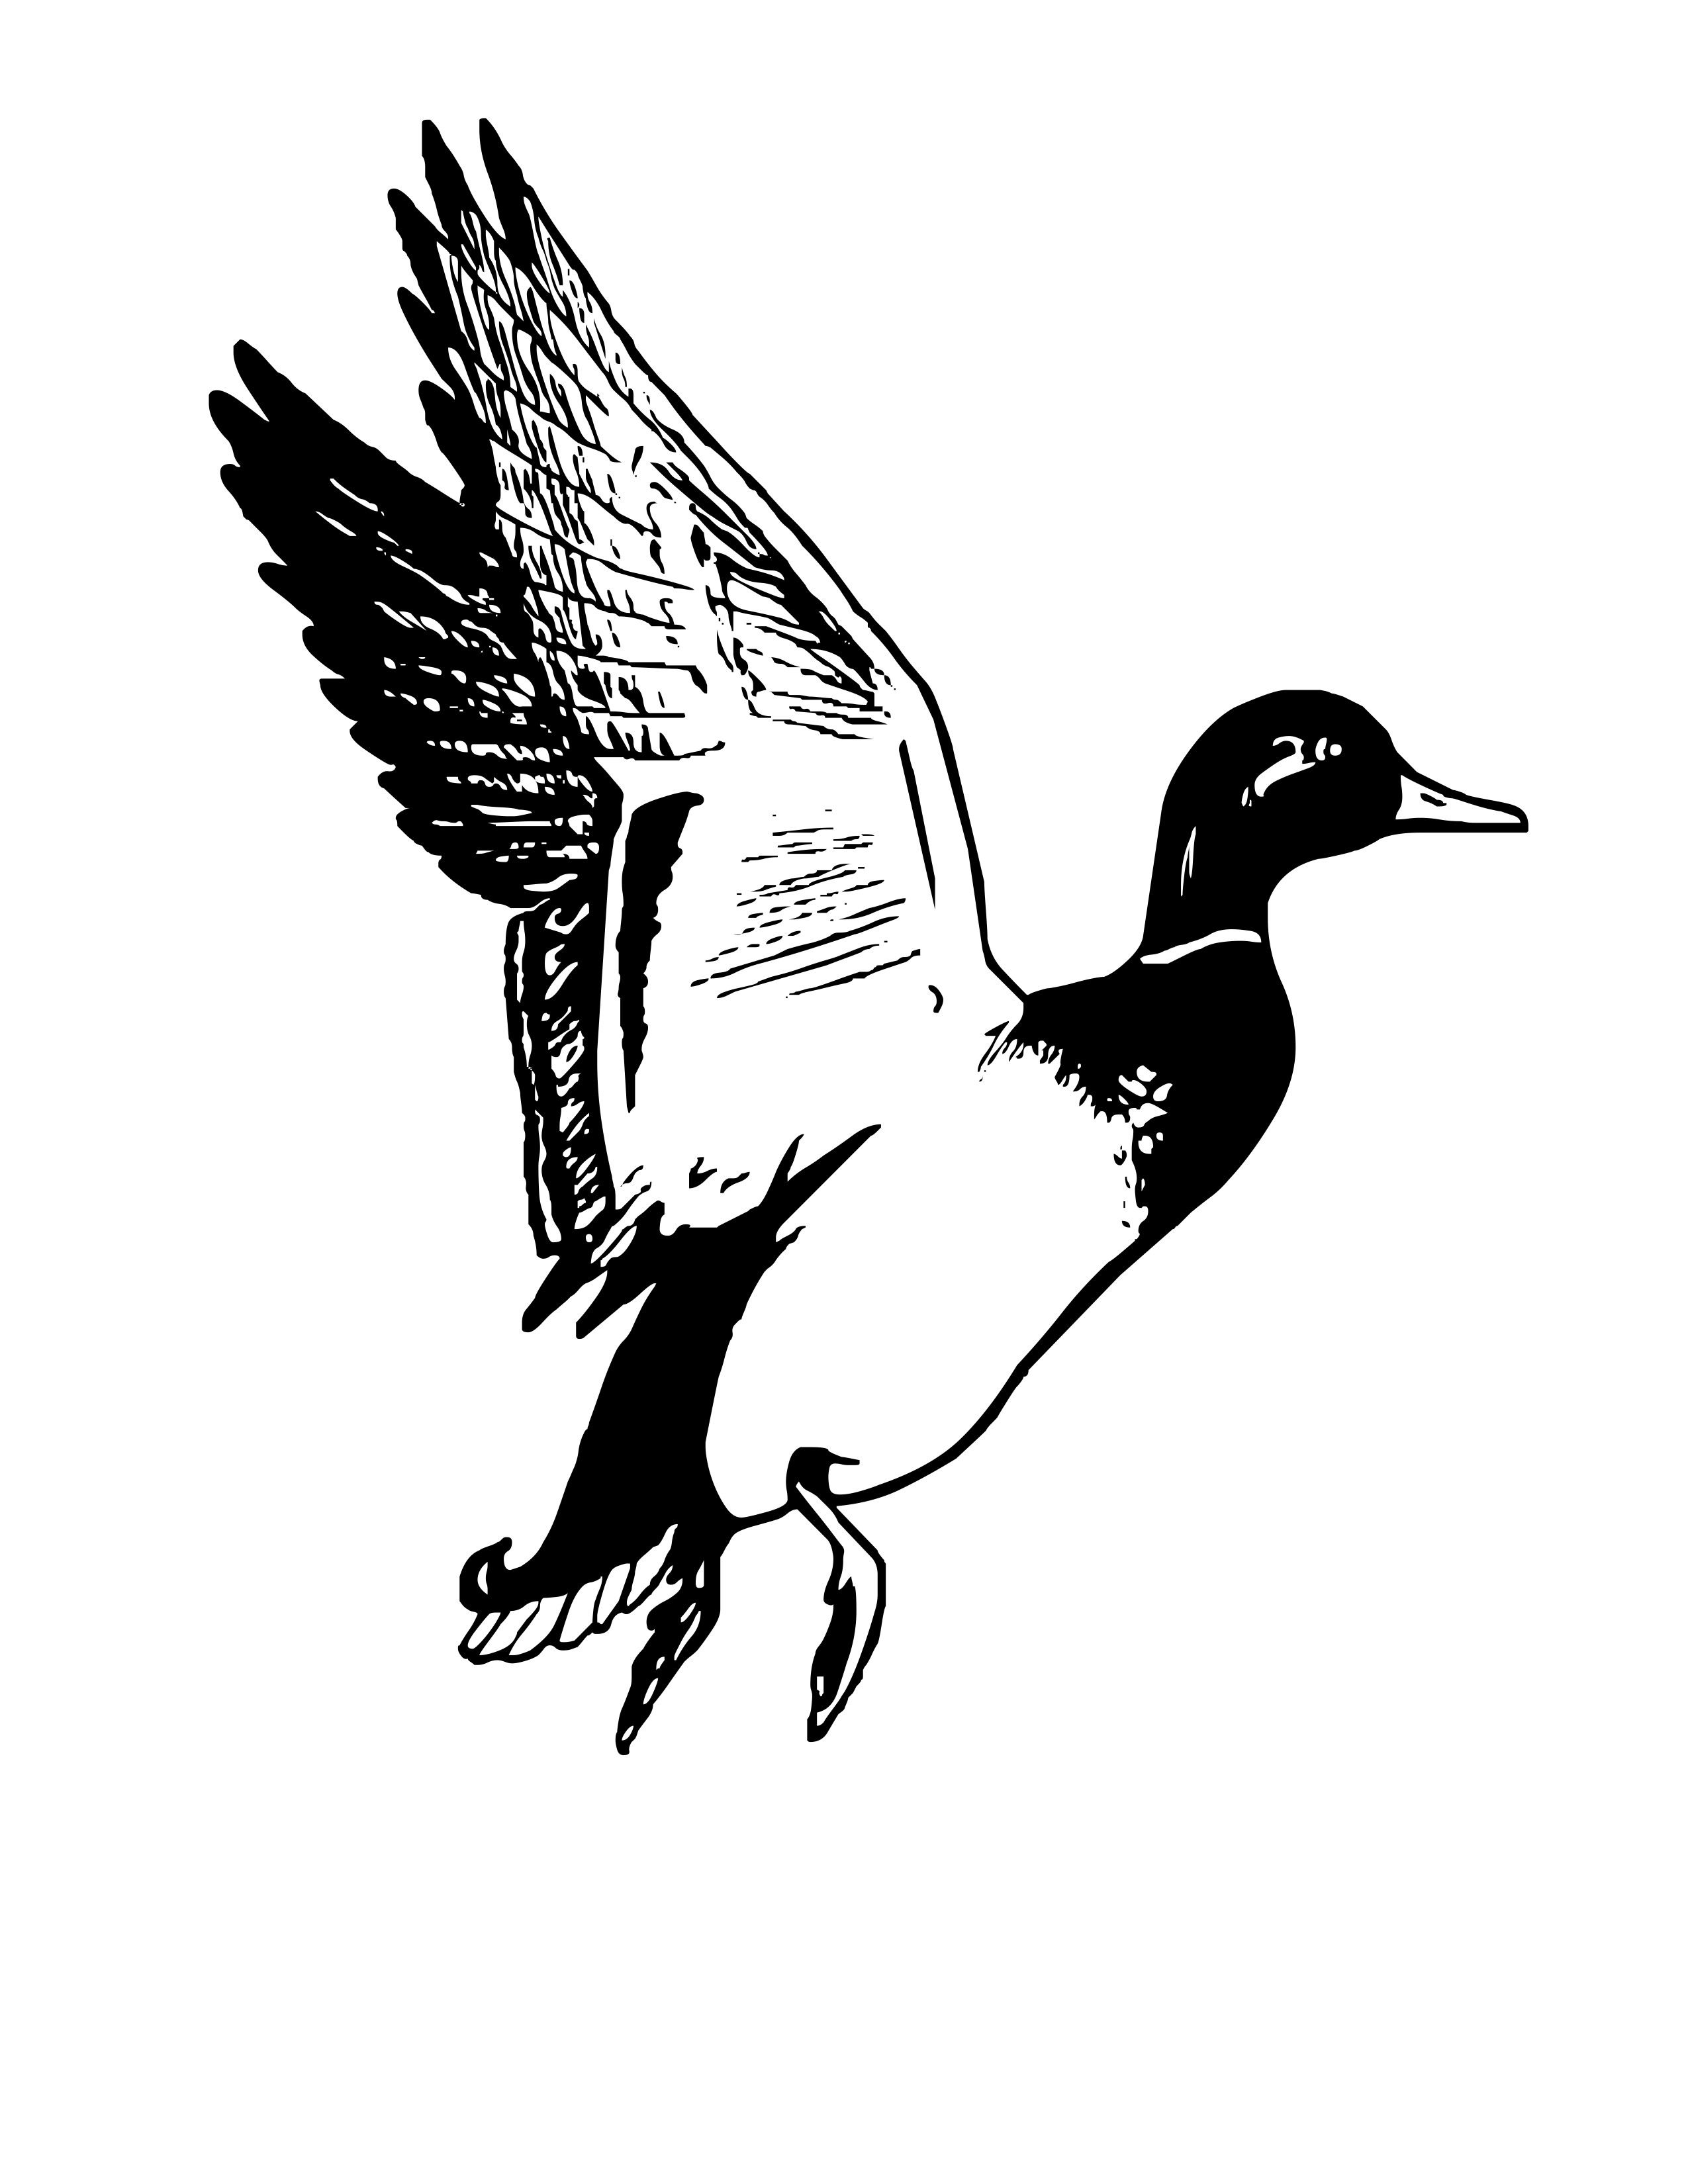 goose hunting clipart - photo #27